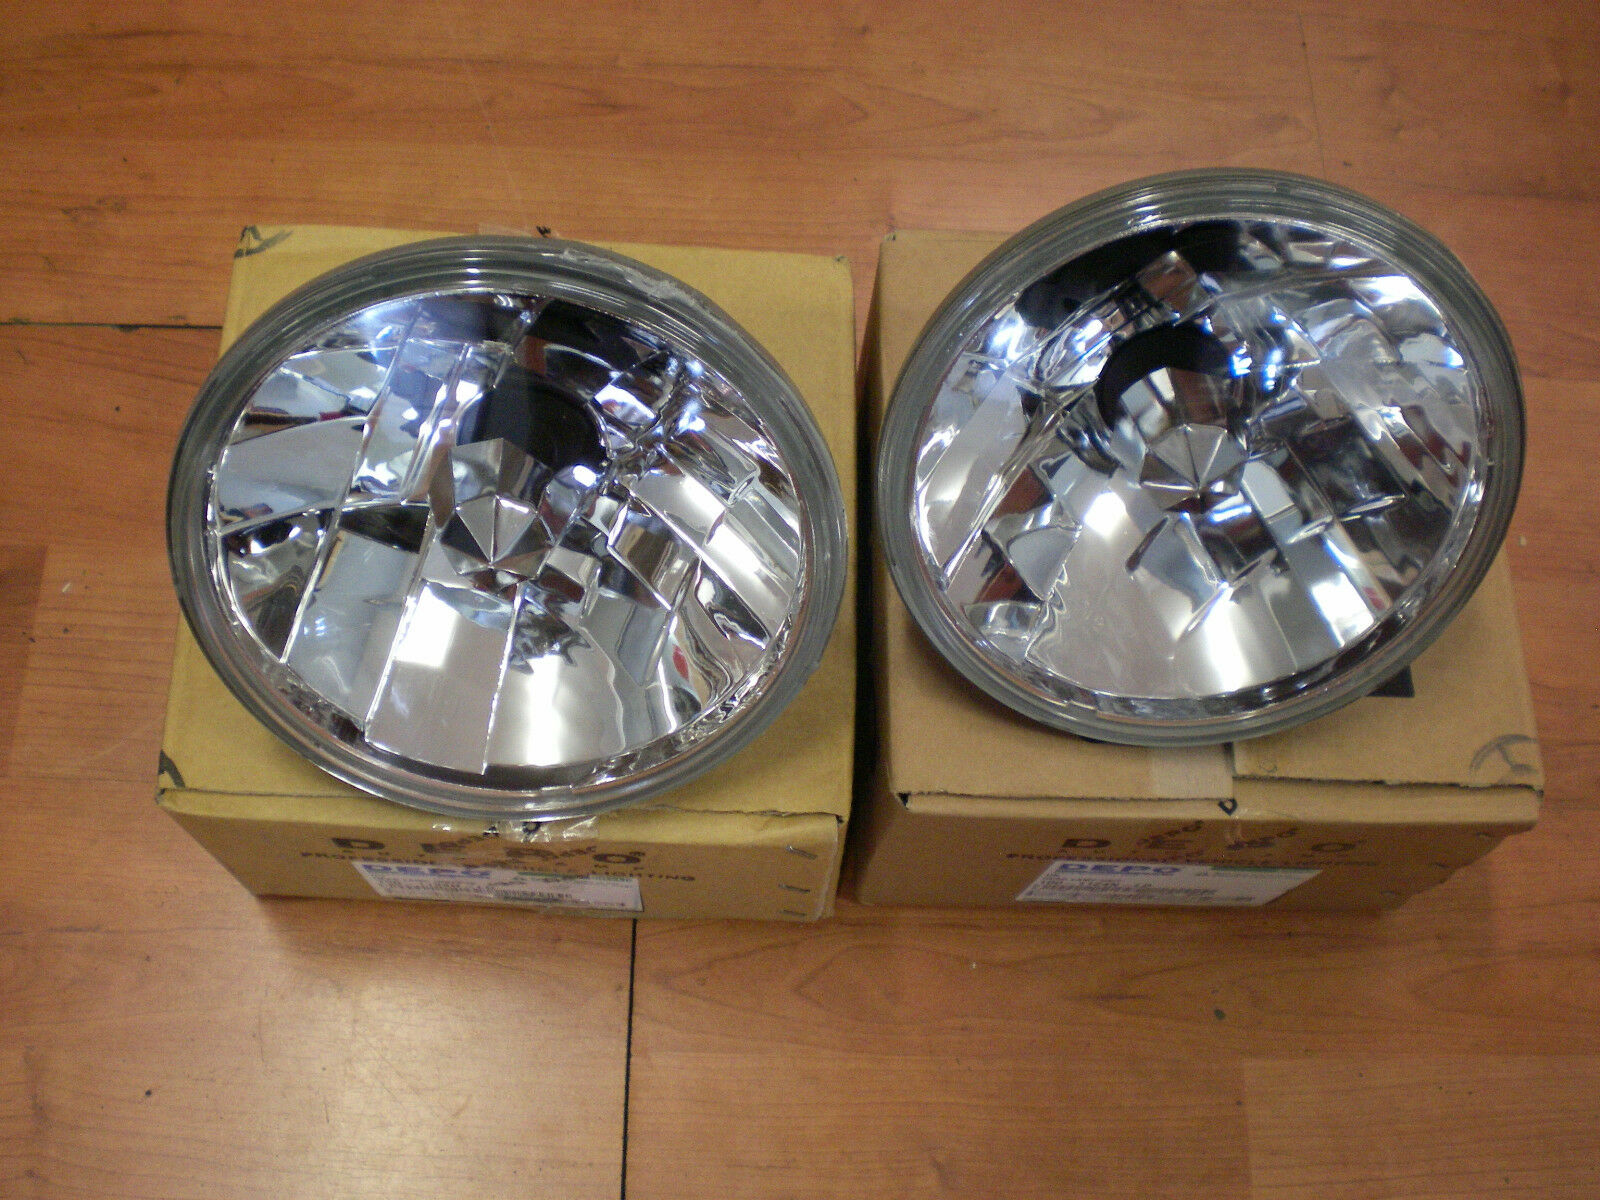 Nissan Datsun 1200 120Y Sunny Apg Round H4 Pair Clear ...